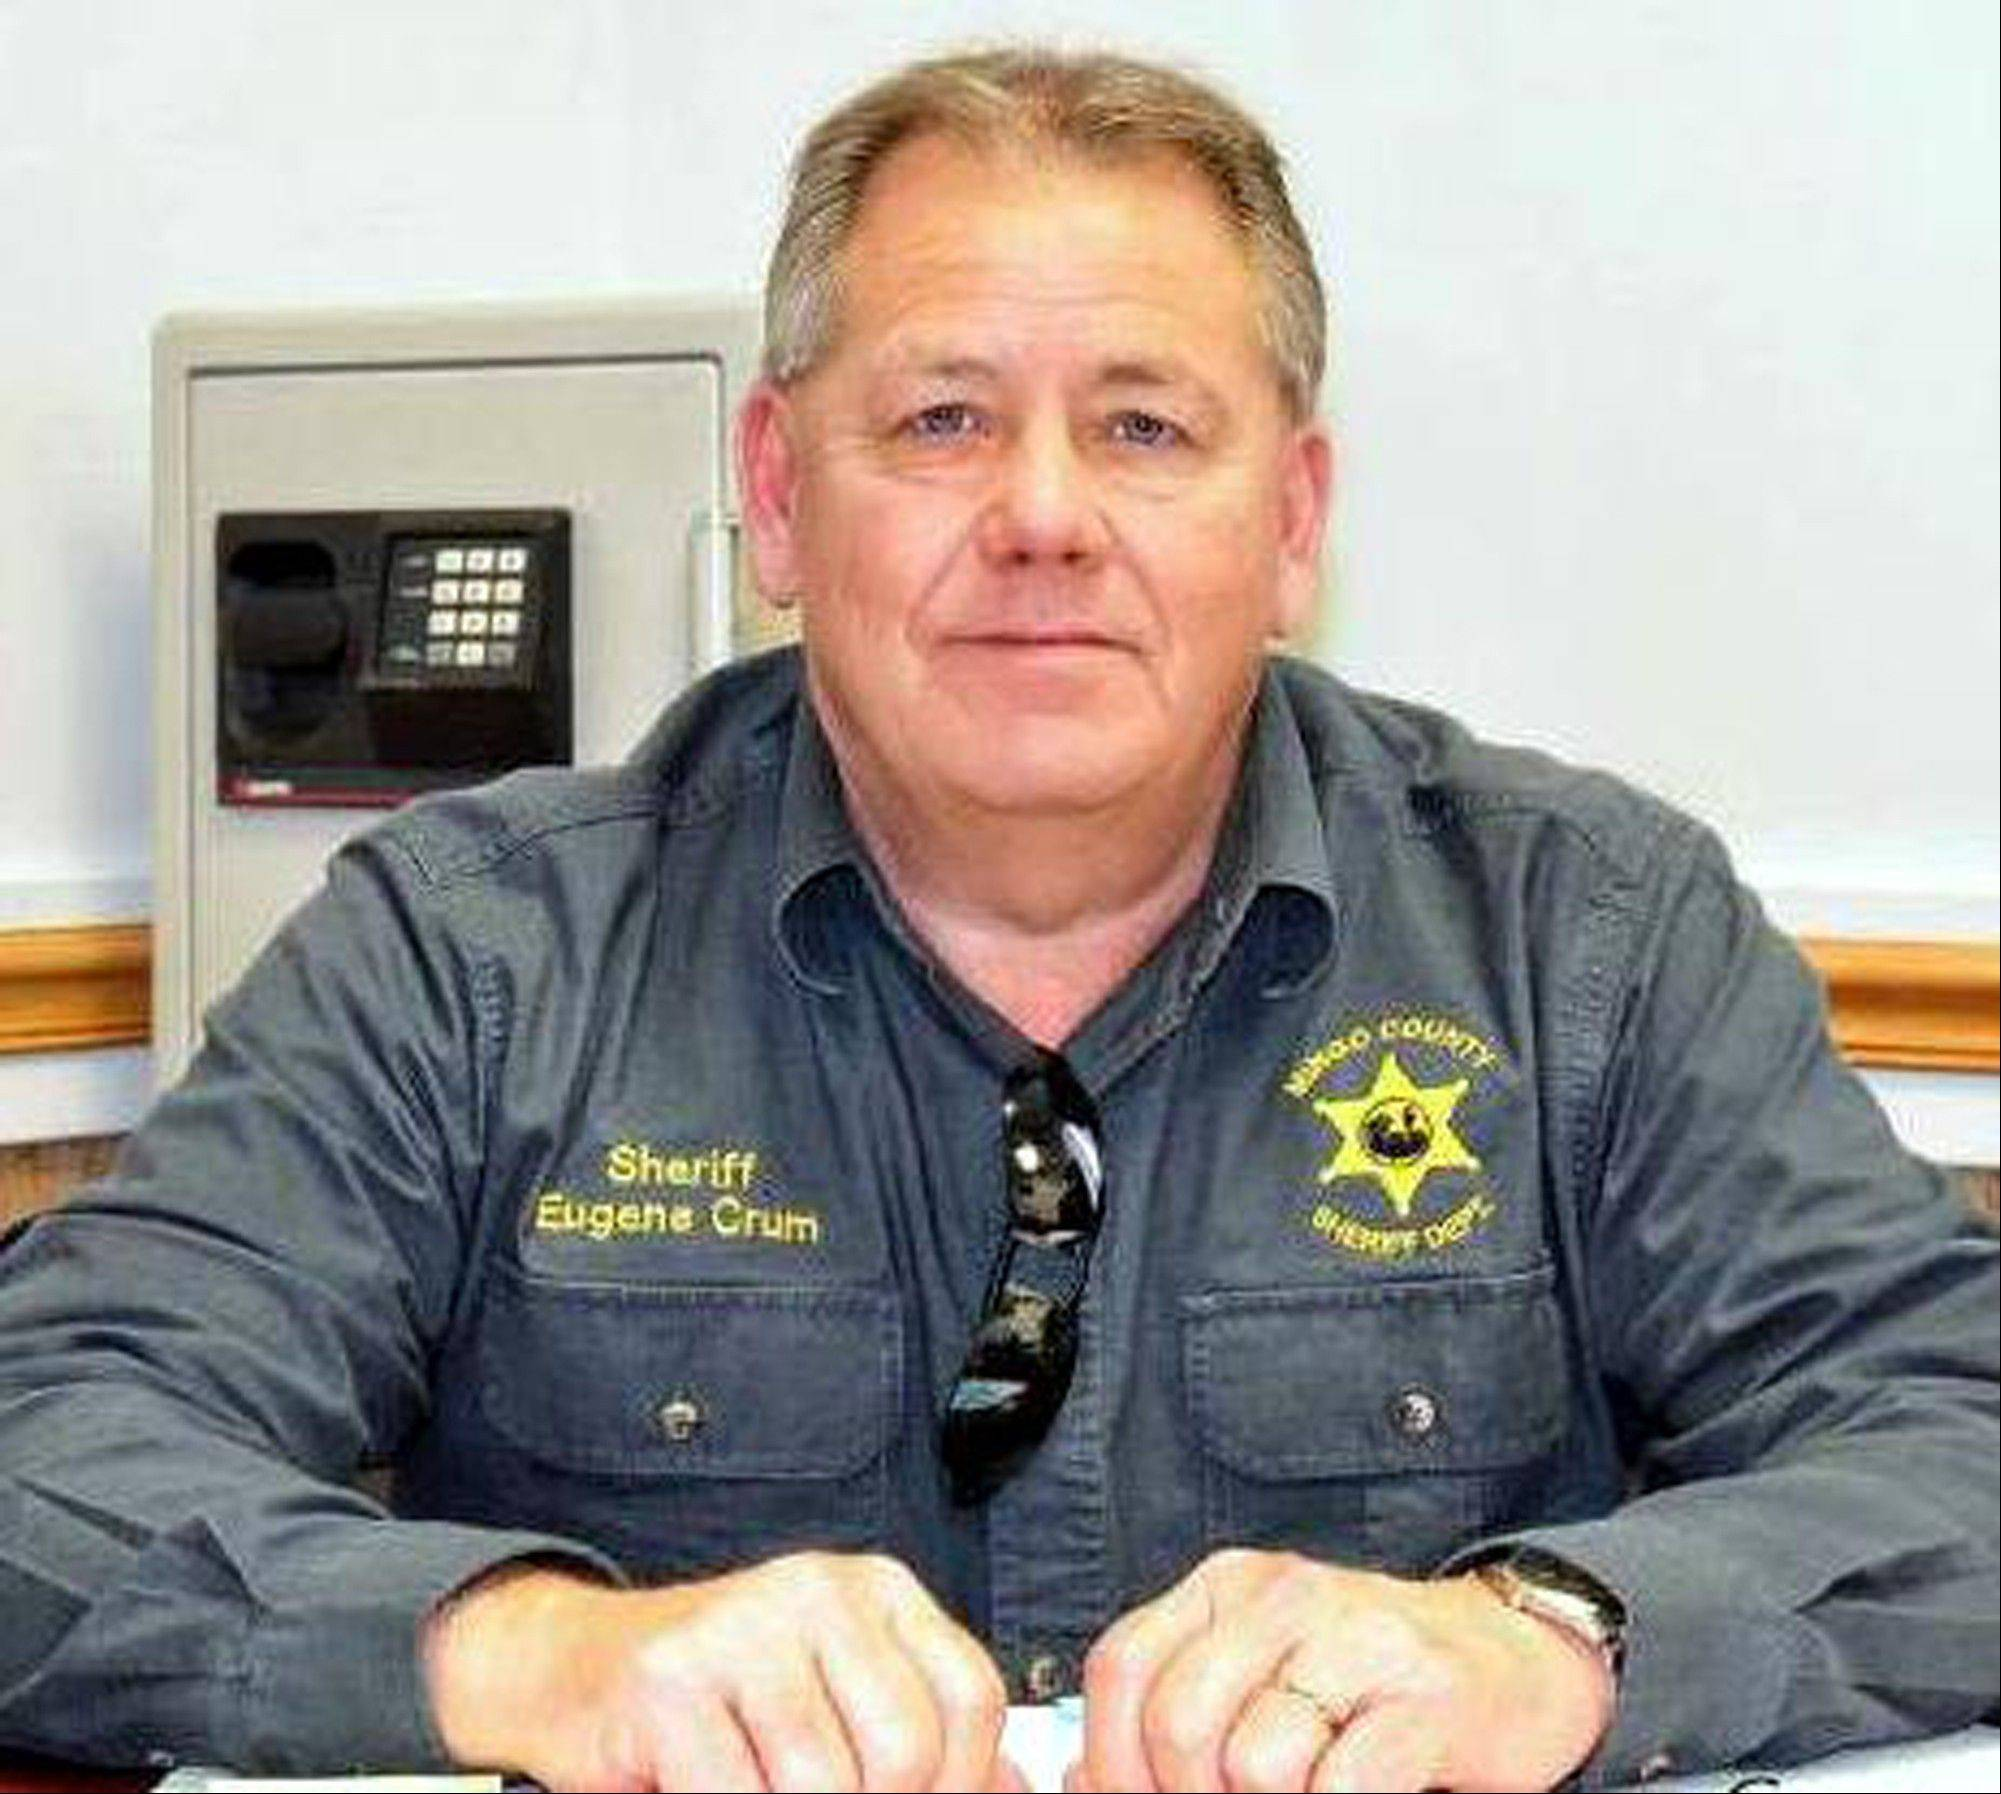 Associated PressMingo County Sheriff Eugene Crum was gunned down Wednesday, April 3, 2013, in the spot where he usually parked and ate lunch in Williamson, W.Va.